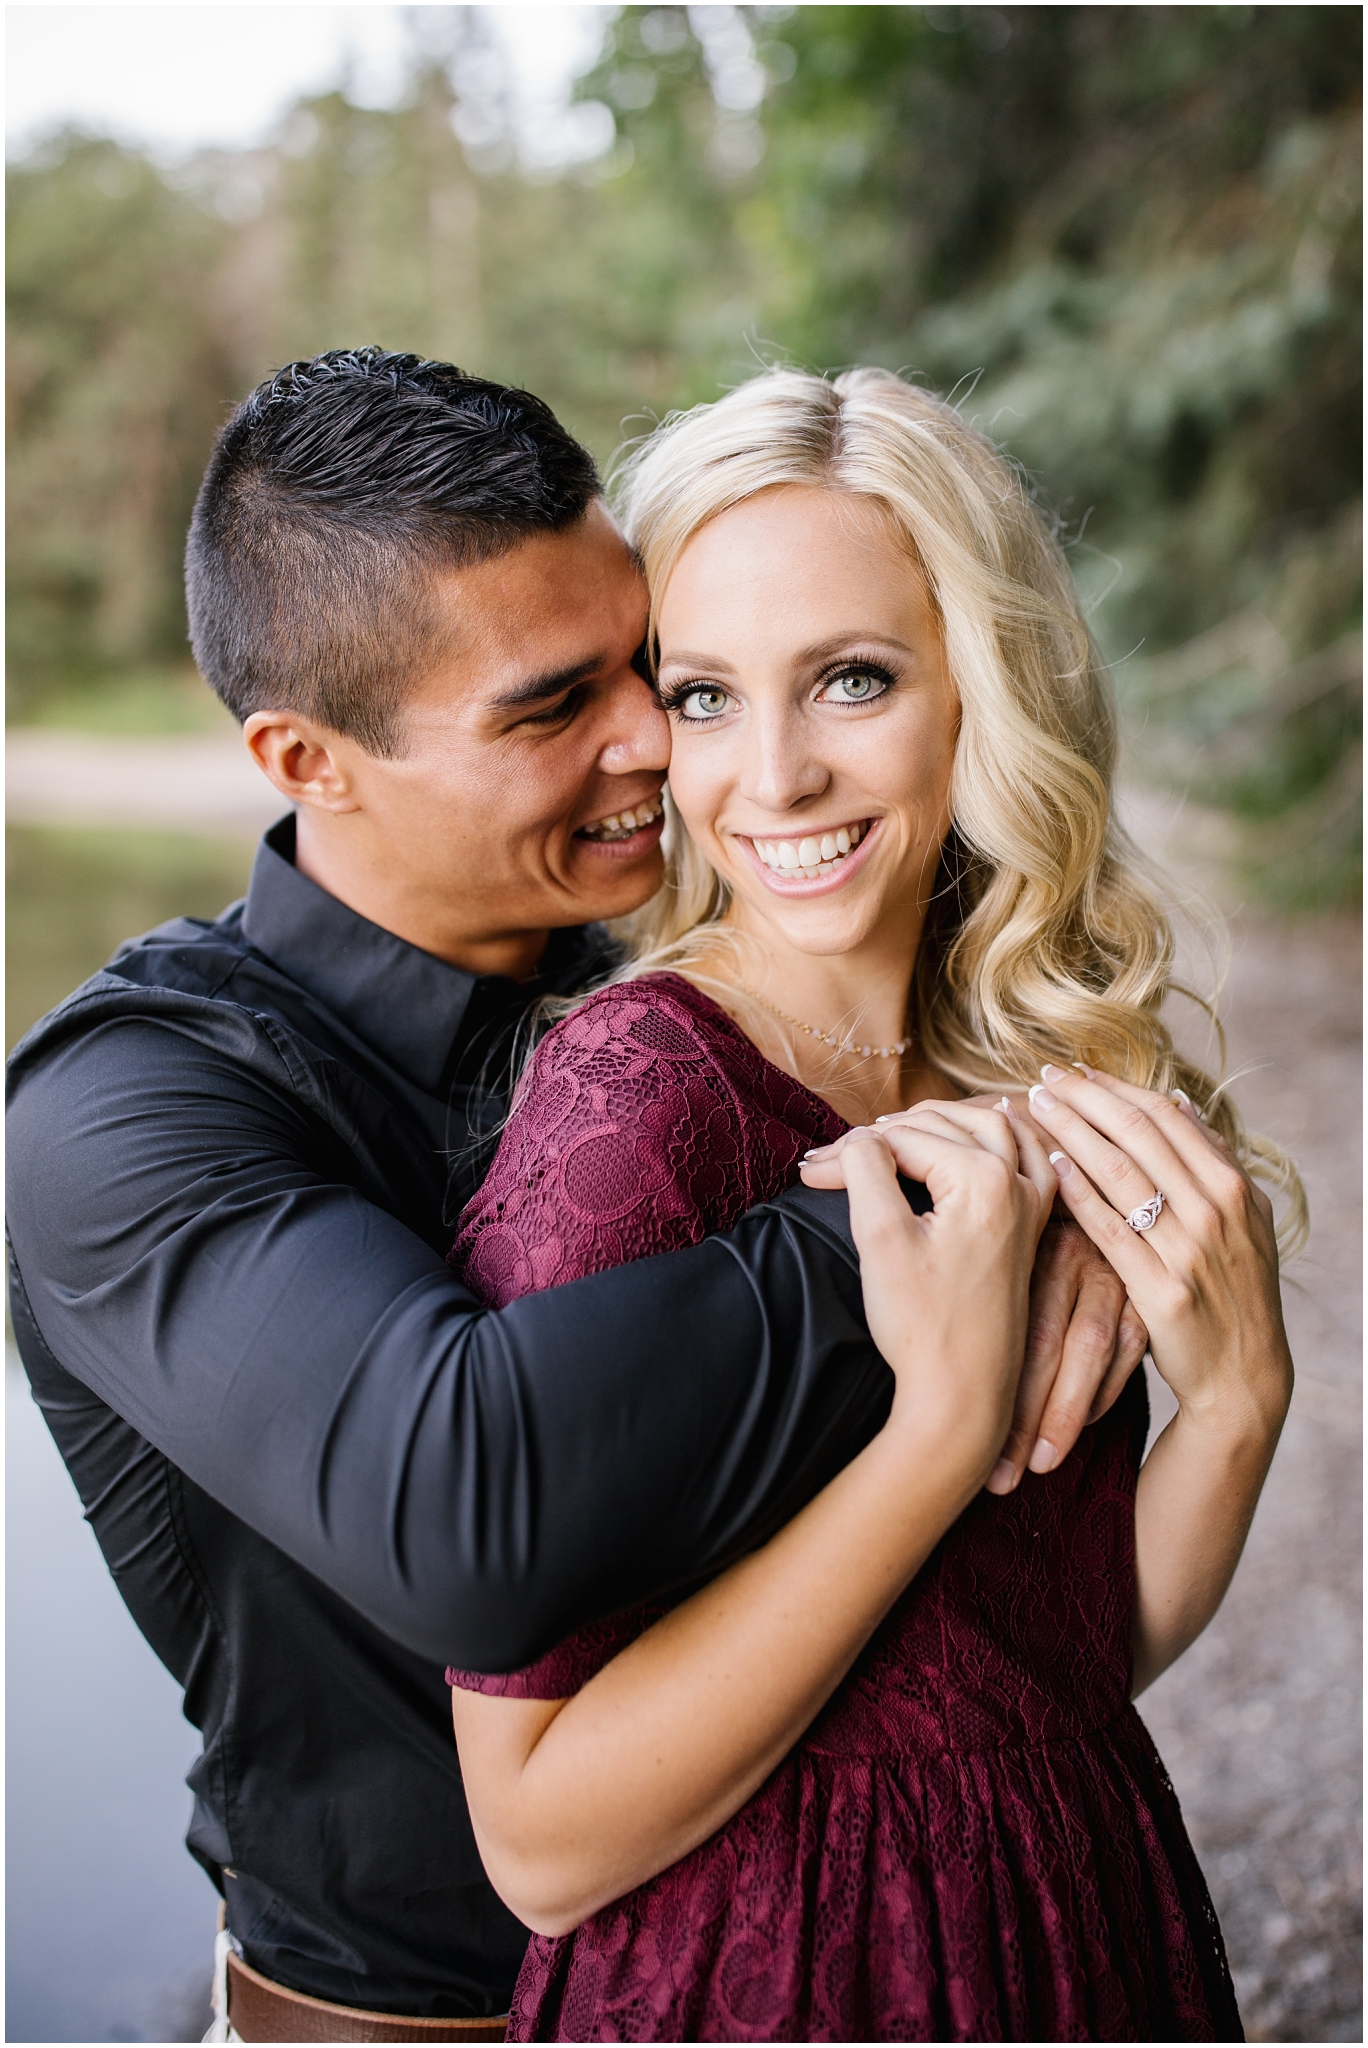 HCengagements-76_Lizzie-B-Imagery-Utah-Wedding-Photographer-Park-City-Salt-Lake-City-Payson-Canyon-Engagement-Session.jpg